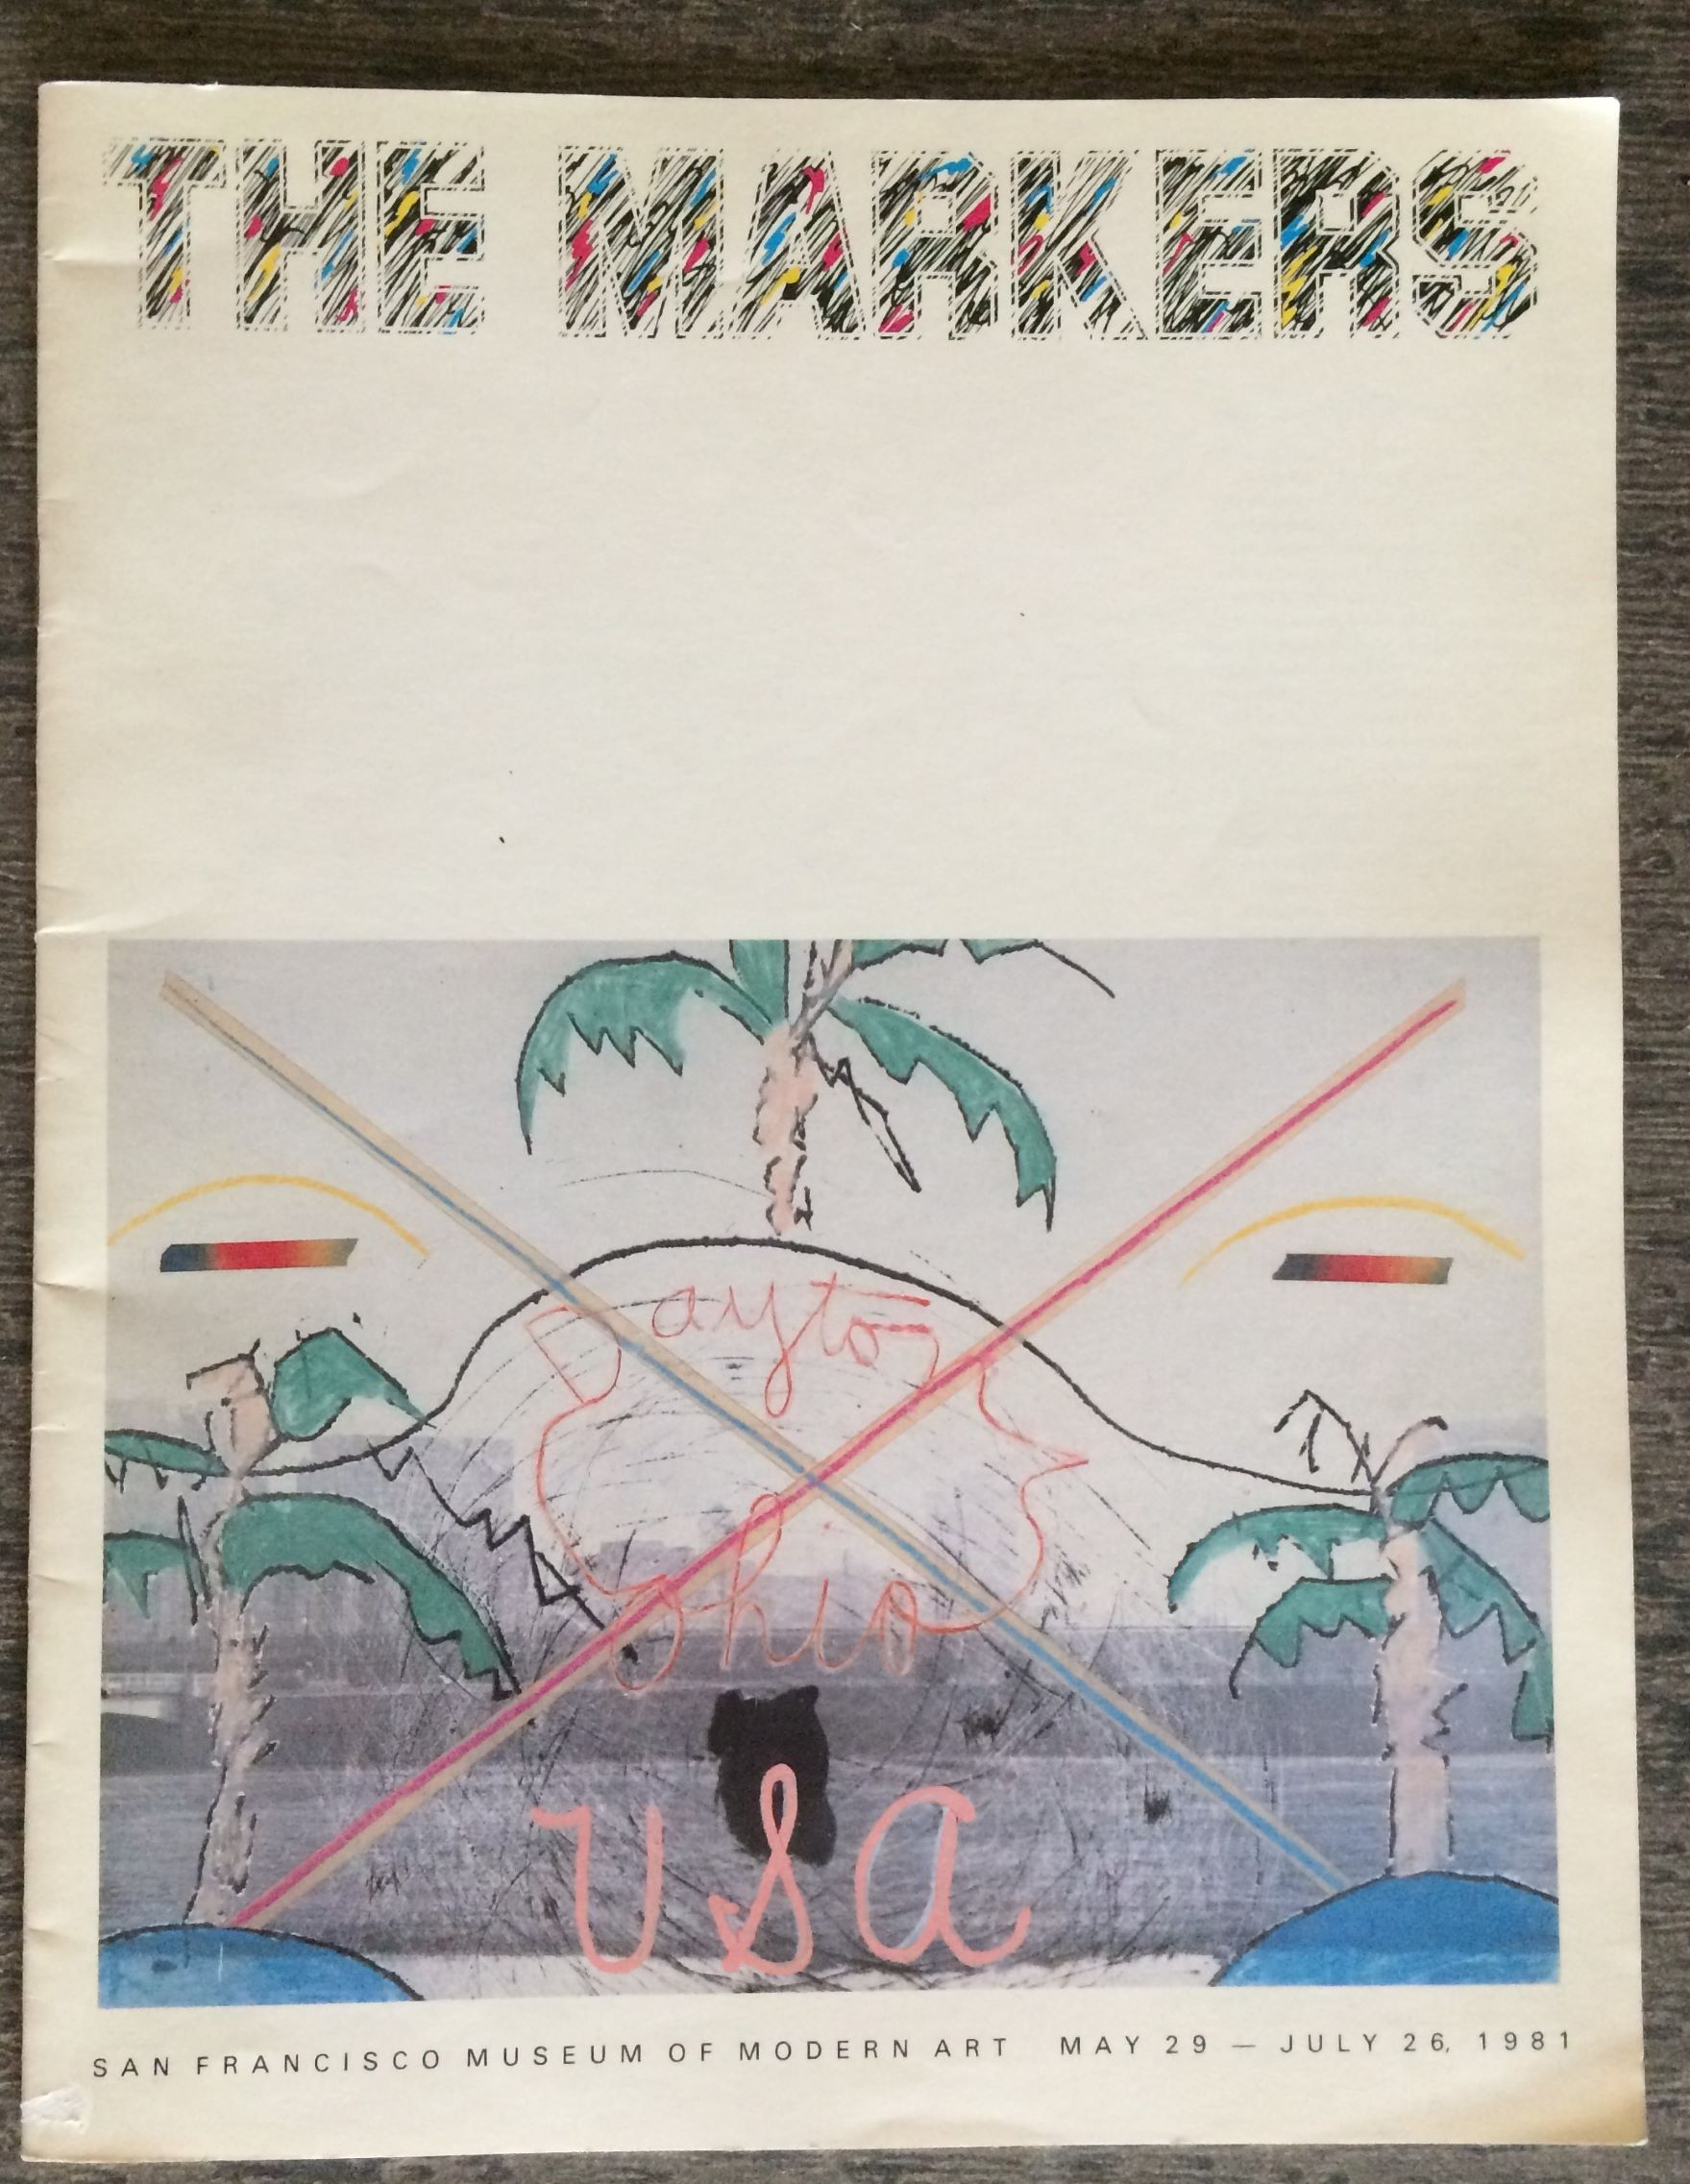 Image for The Markers. San Francisco Museum of Modern Art, May 29 - July 26, 1981.